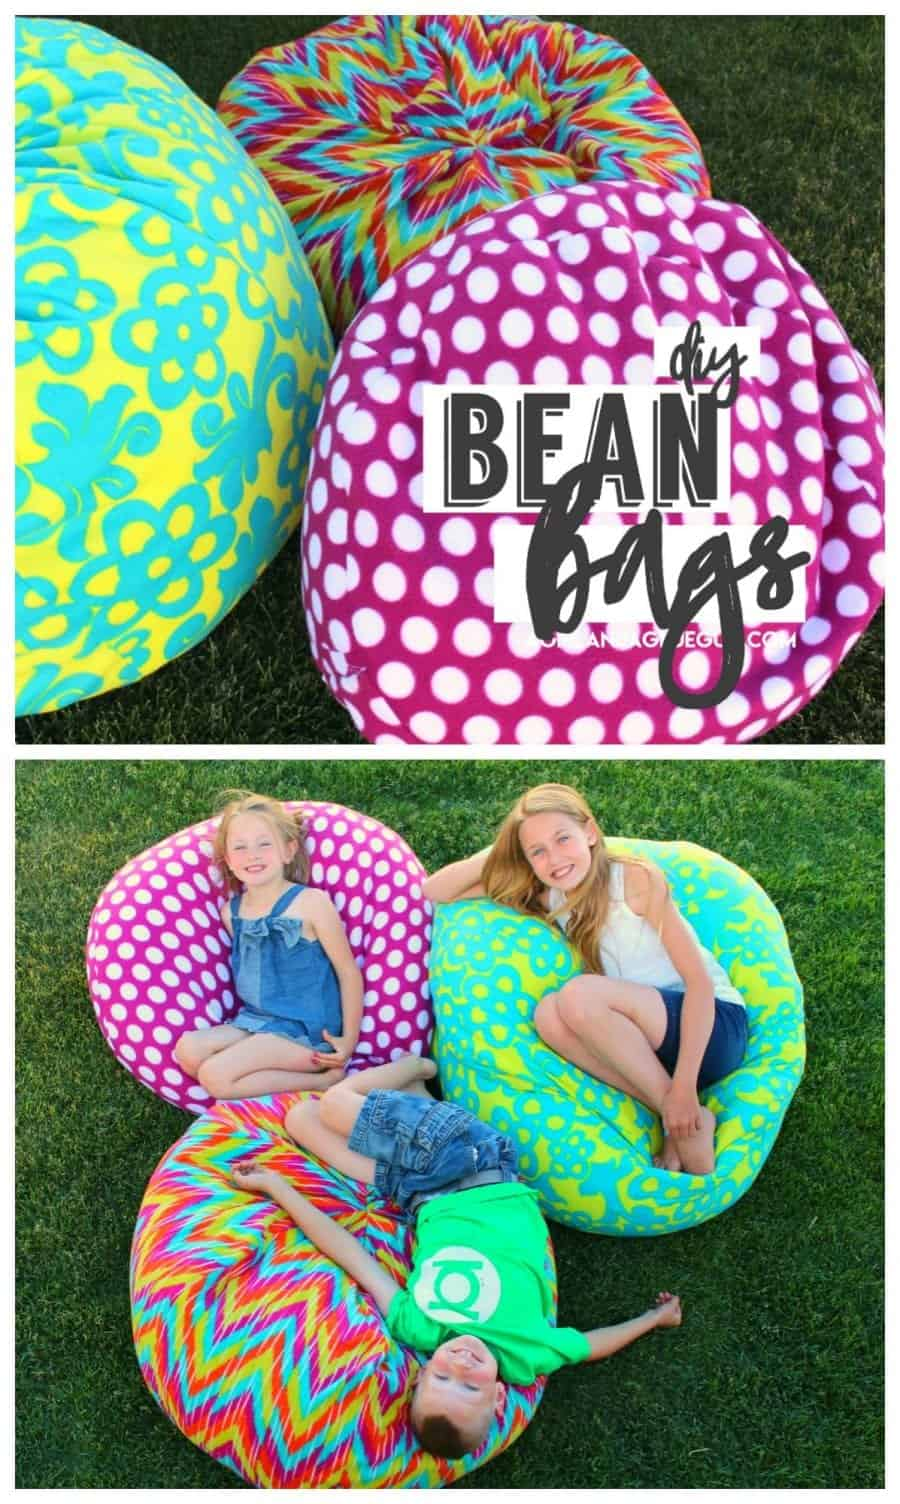 How To Make A Bean Bag Chair And Glue Gun